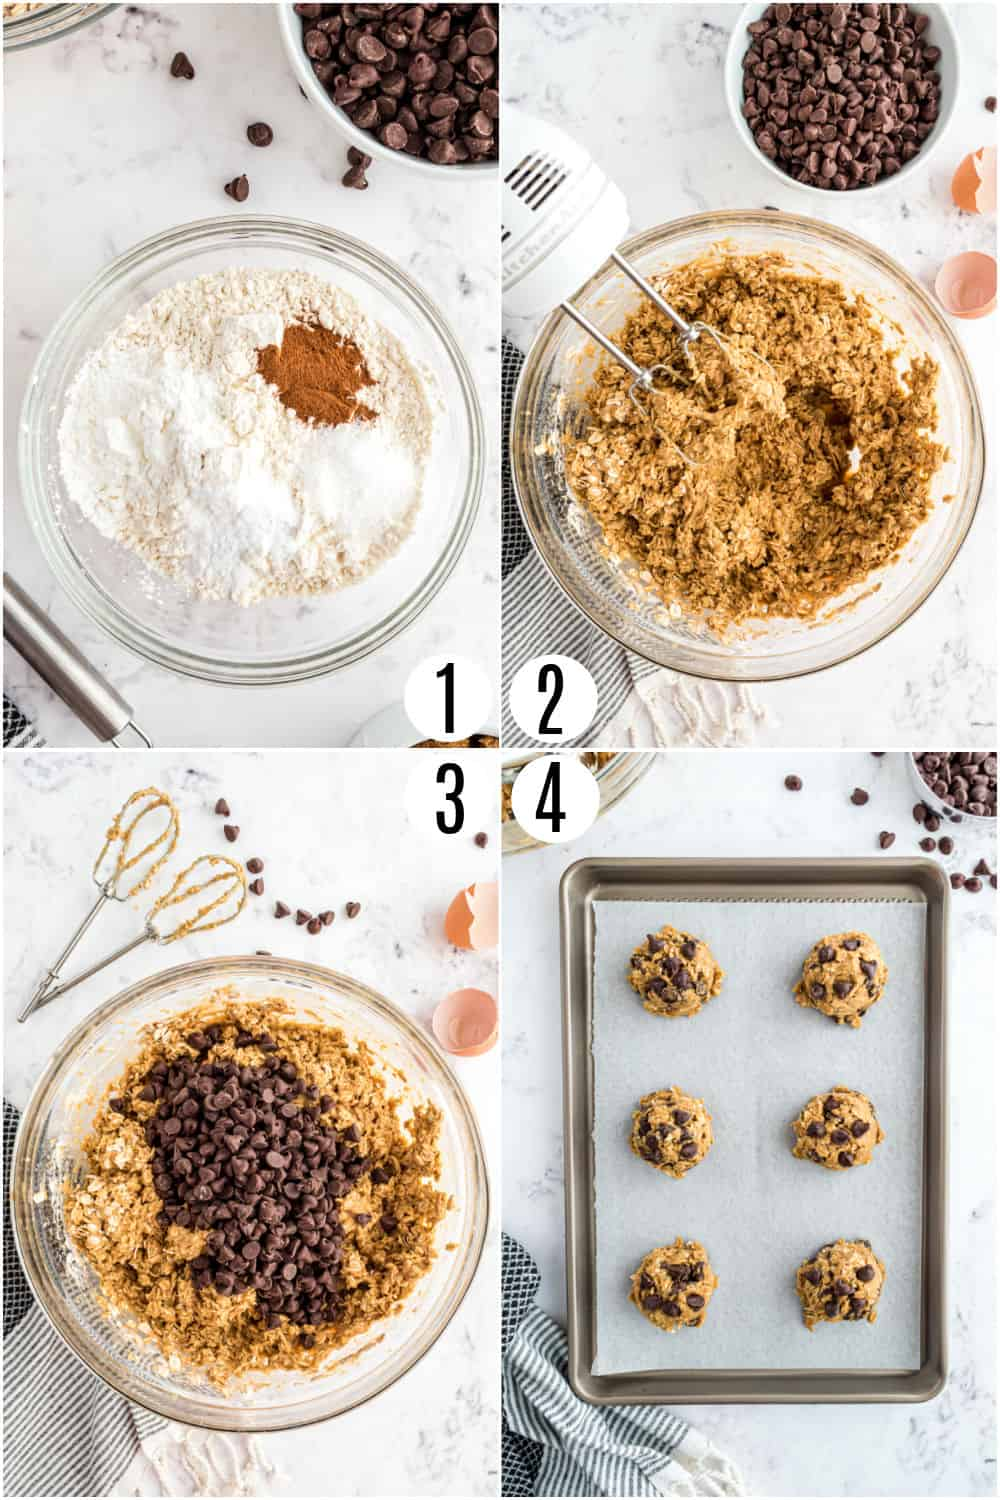 Step by step photos showing how to make oatmeal chocolate chips cookies.